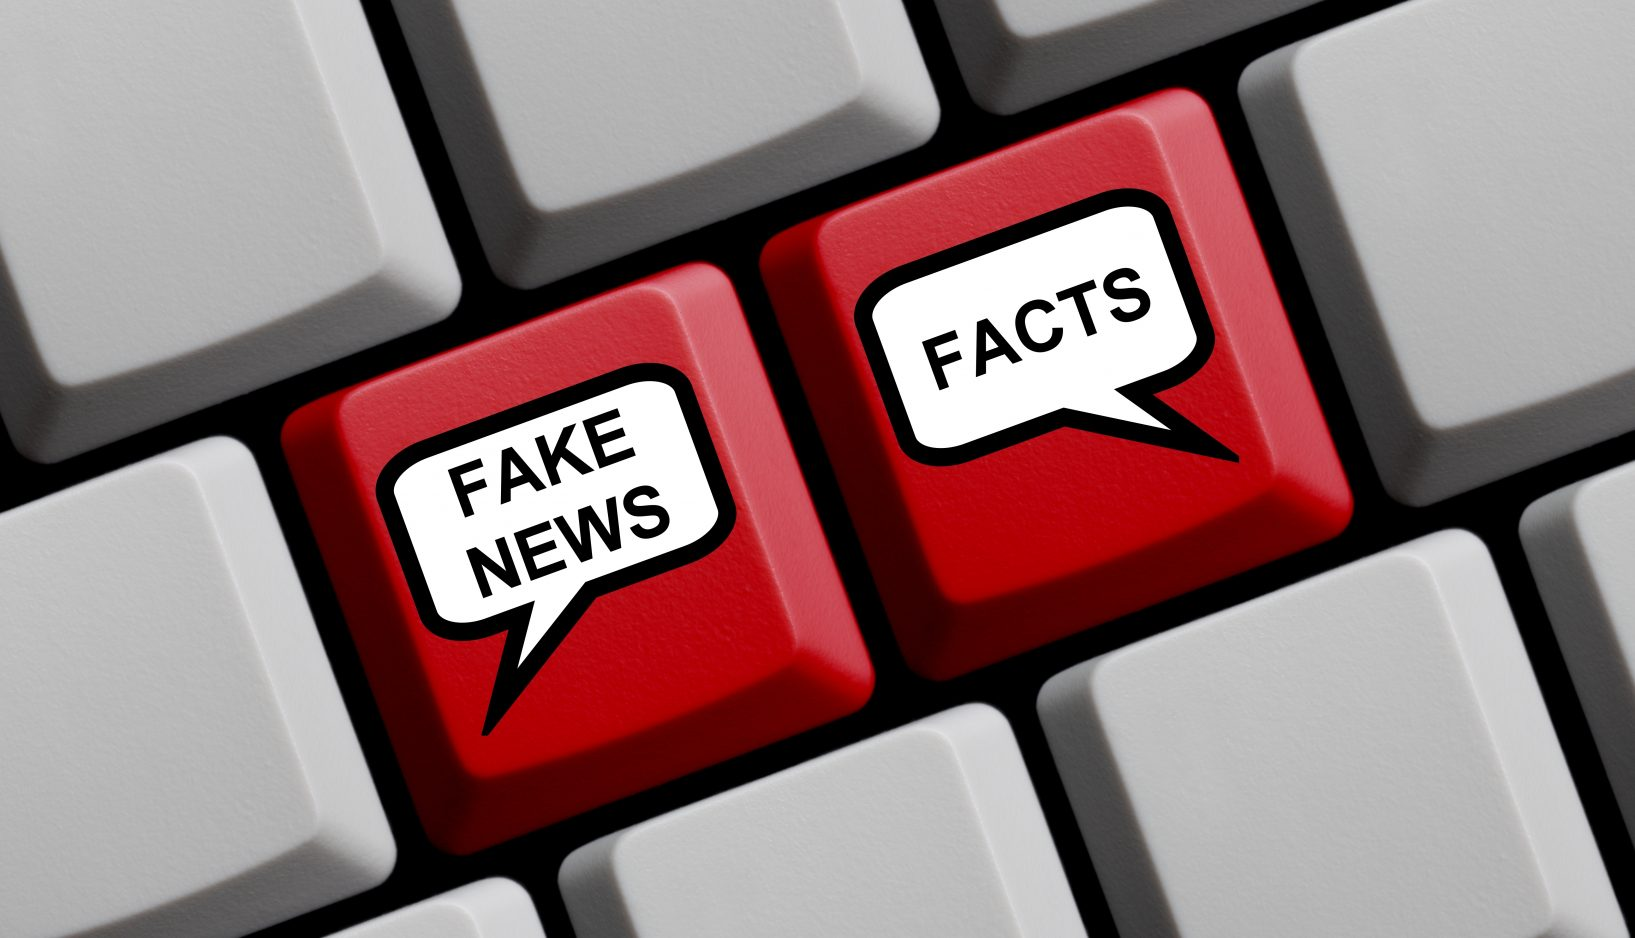 The Power of Novelty and Fake News: Lessons for Corporate Leaders